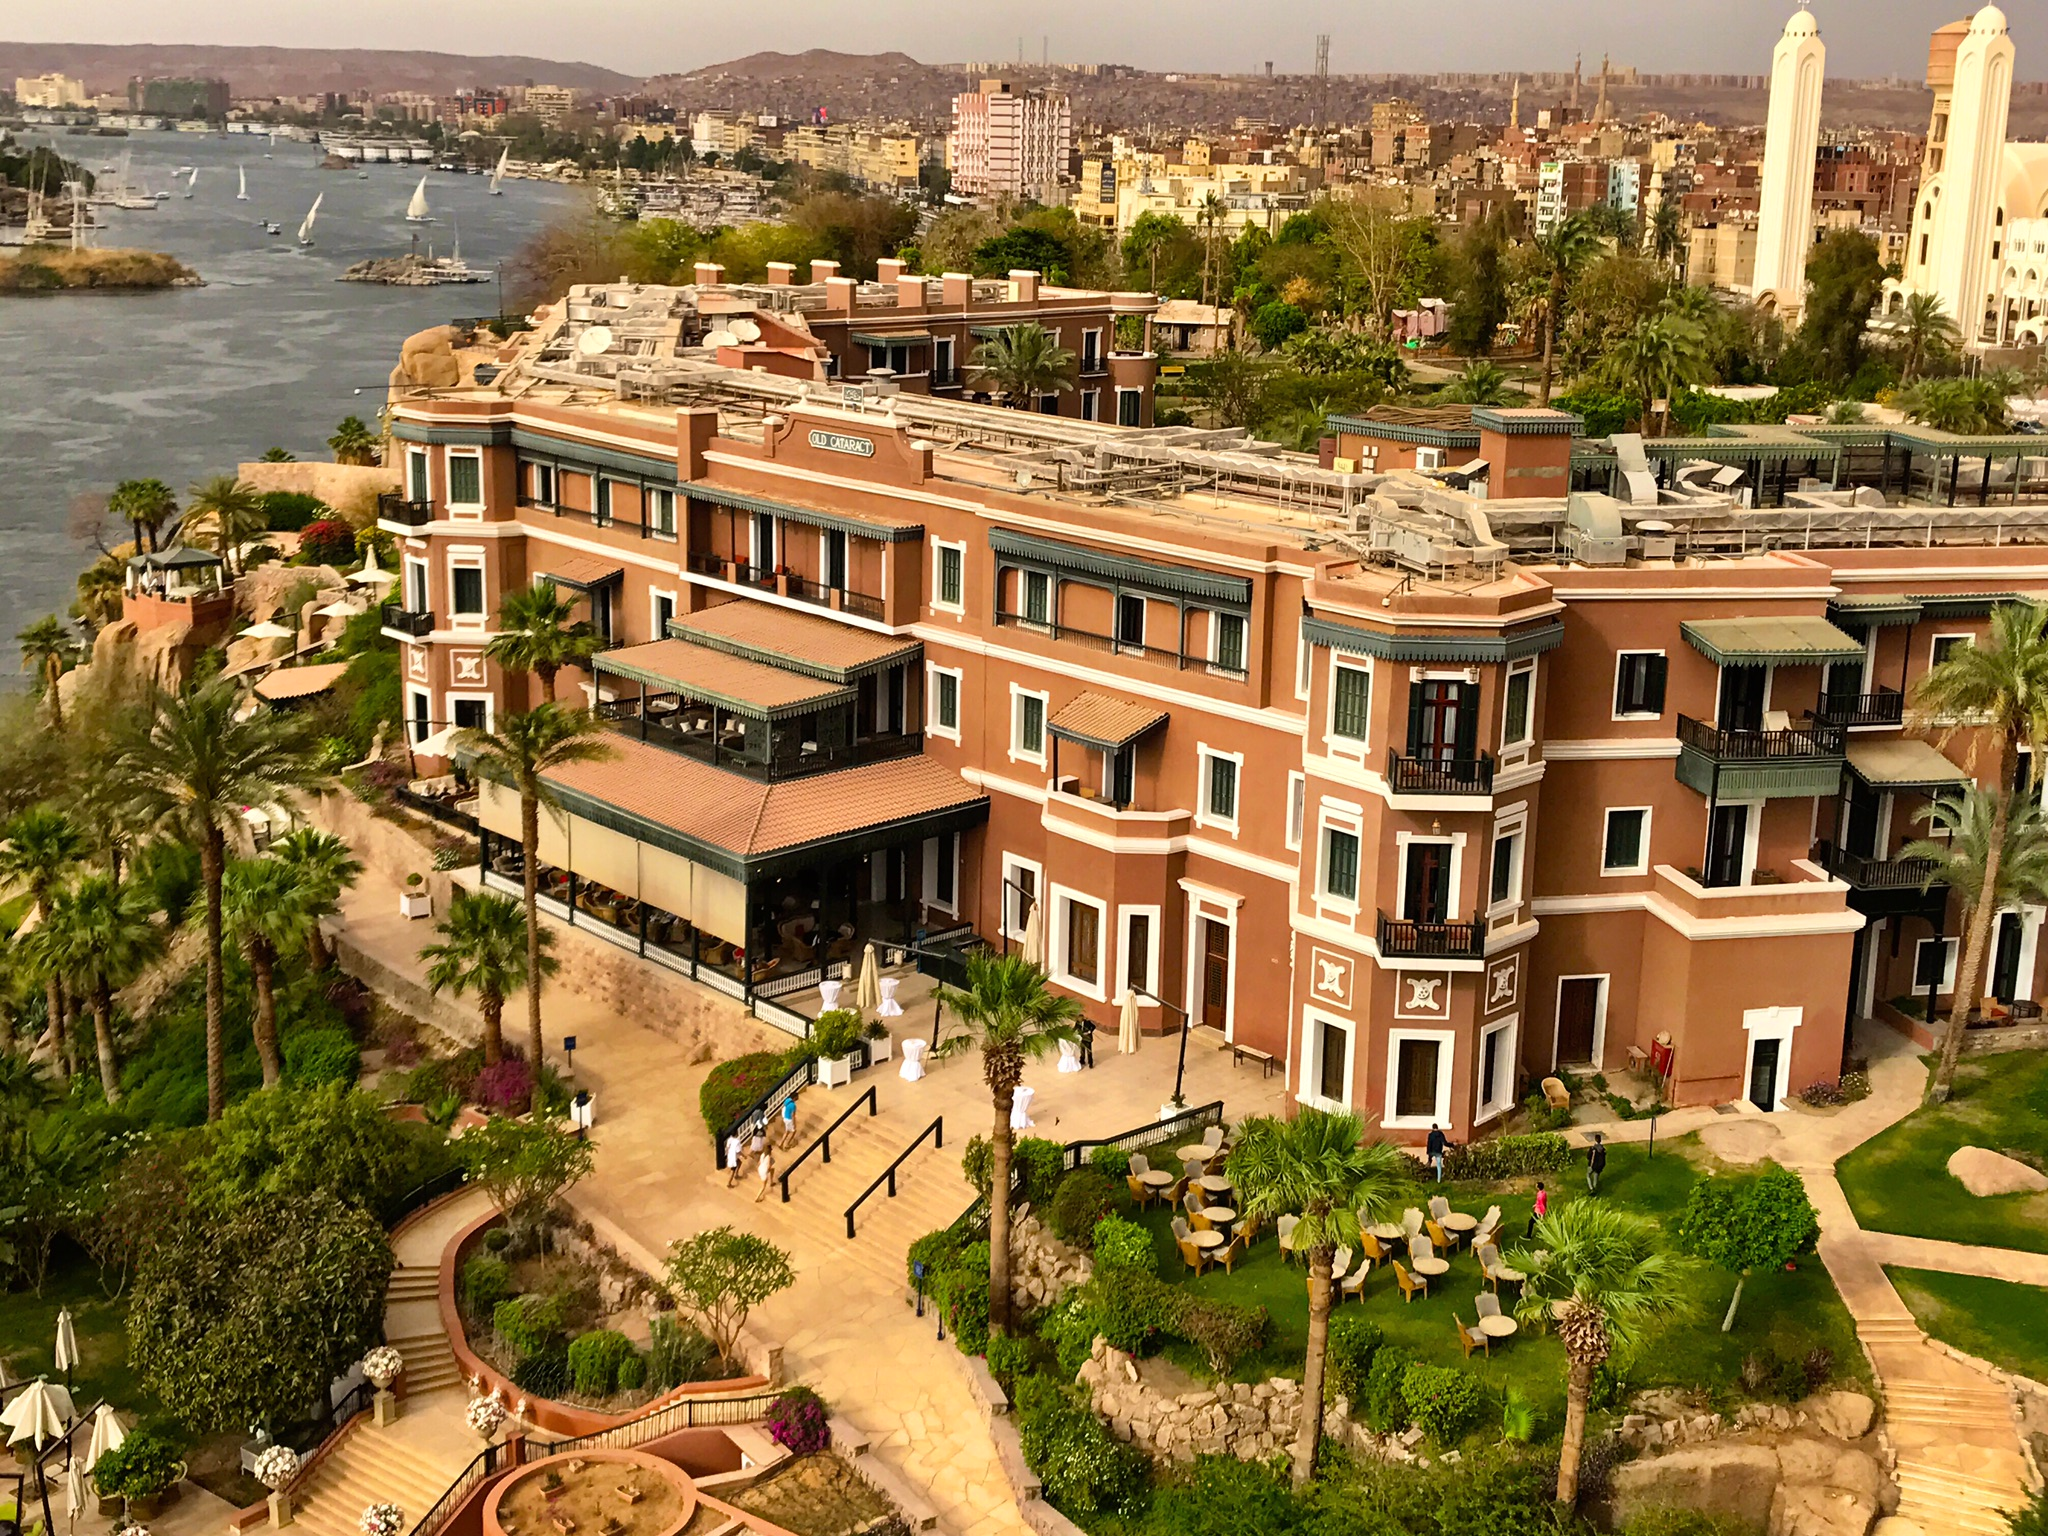 Aswan-featured-image